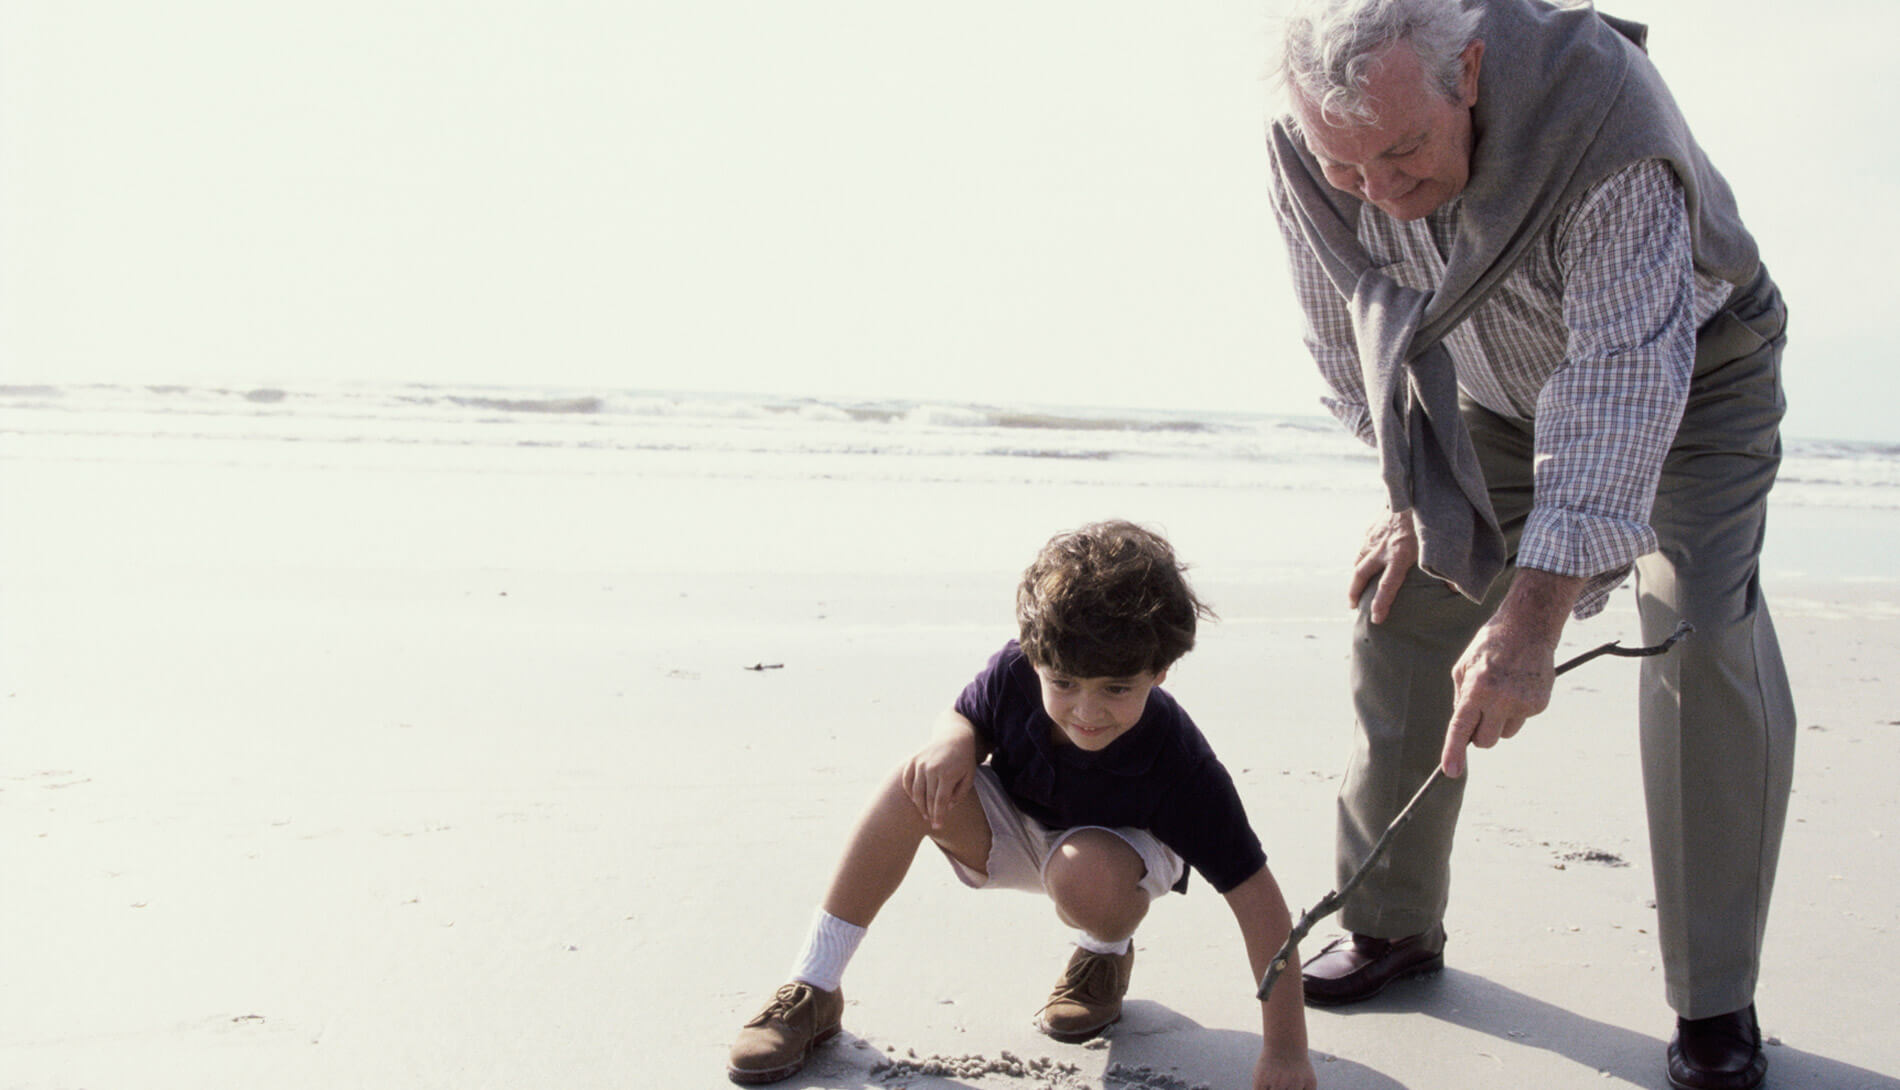 Man and boy playing on the beach